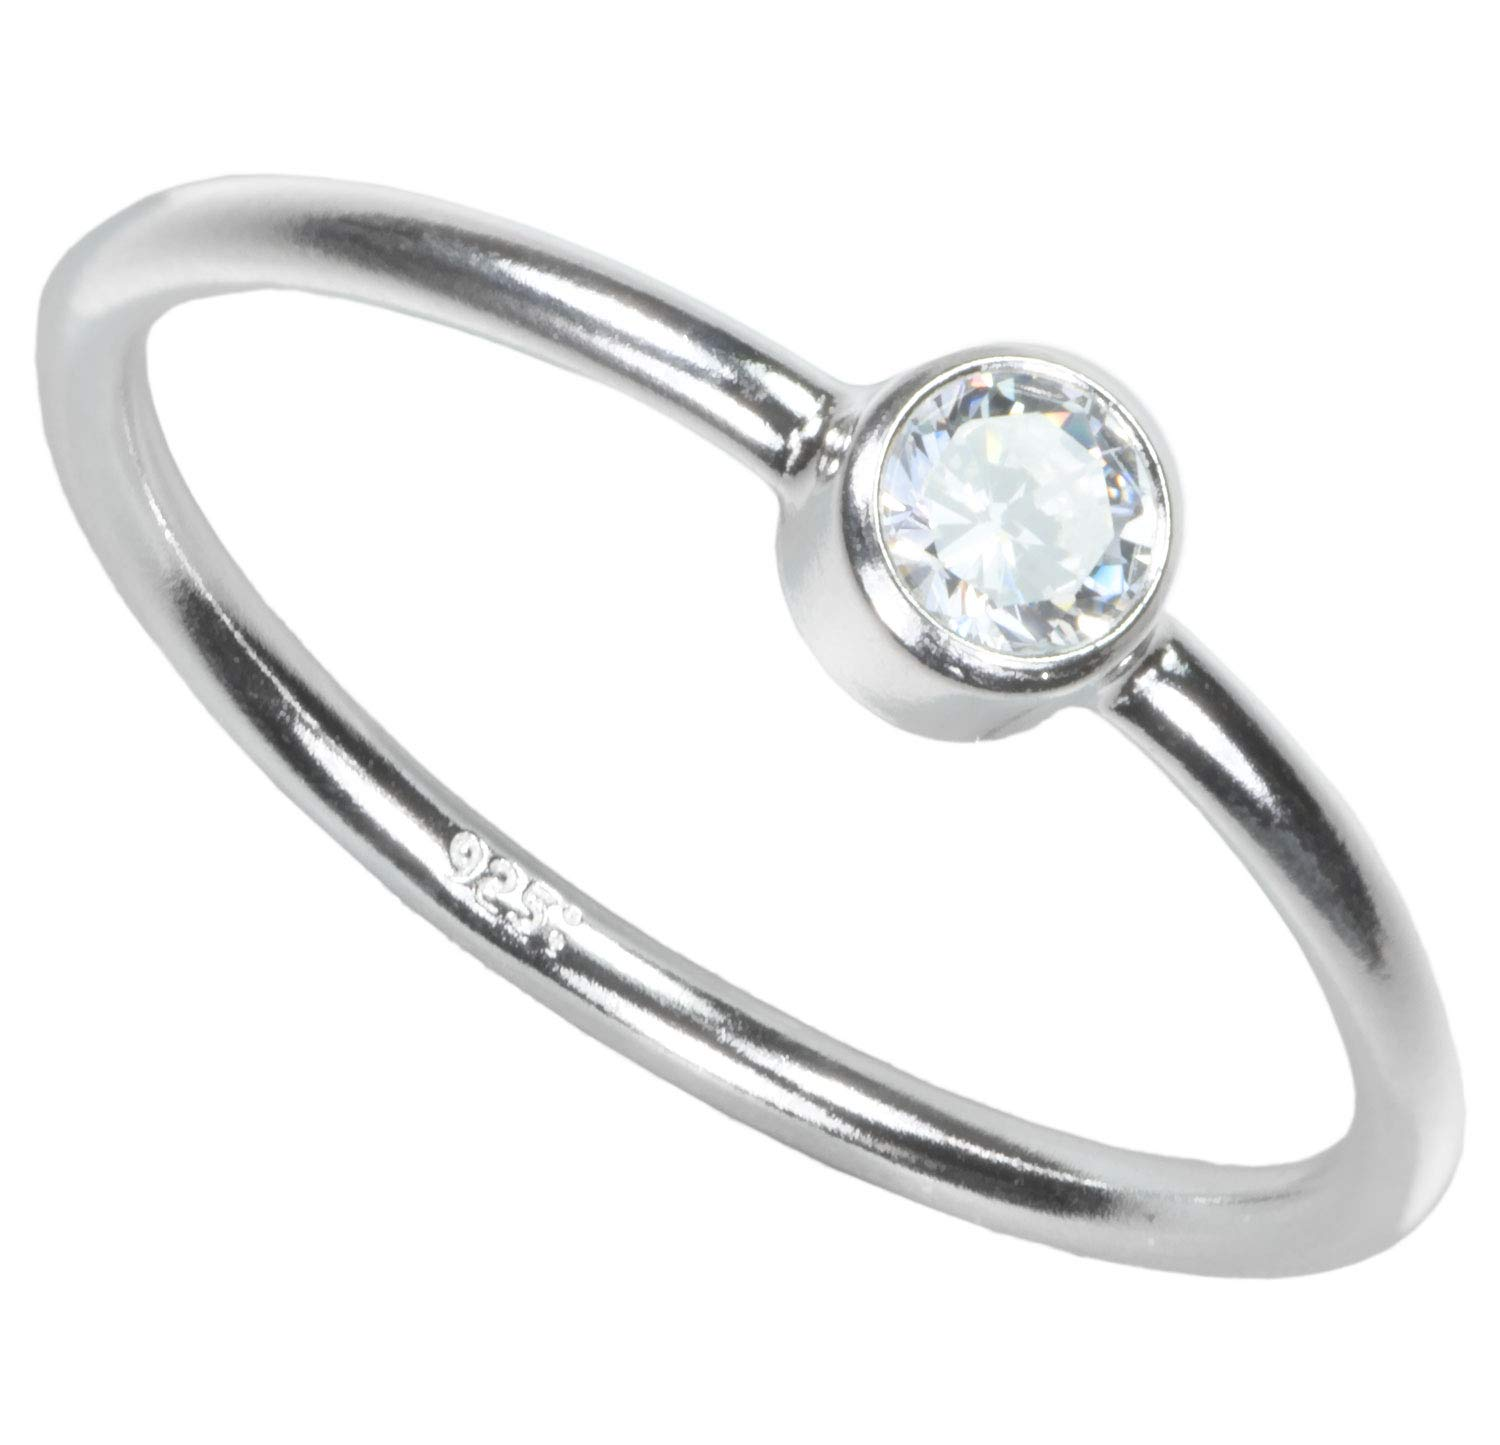 F/&F jewel Classic Flower Blue Zircon Ring Vintage Jewelry for Women Wedding Engagement Rings